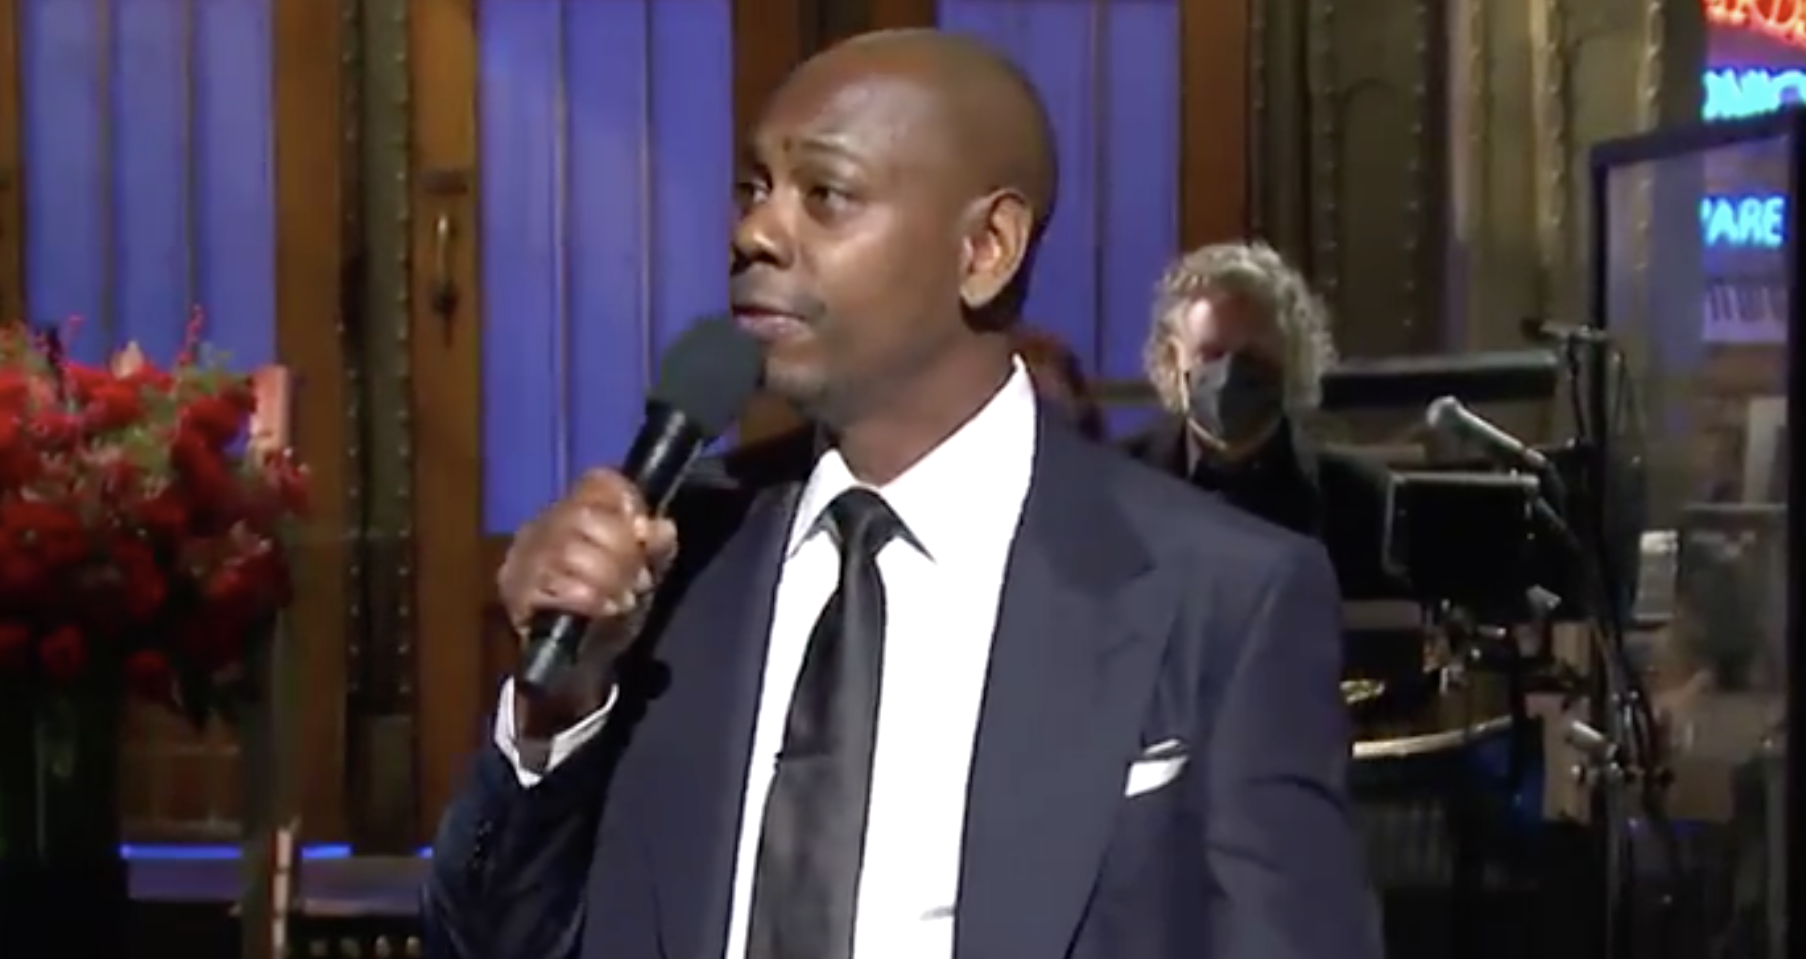 Dave Chappelle addresses Trump, racism and the coronavirus in a powerful ' SNL' monologue: 'Did I trigger you?'